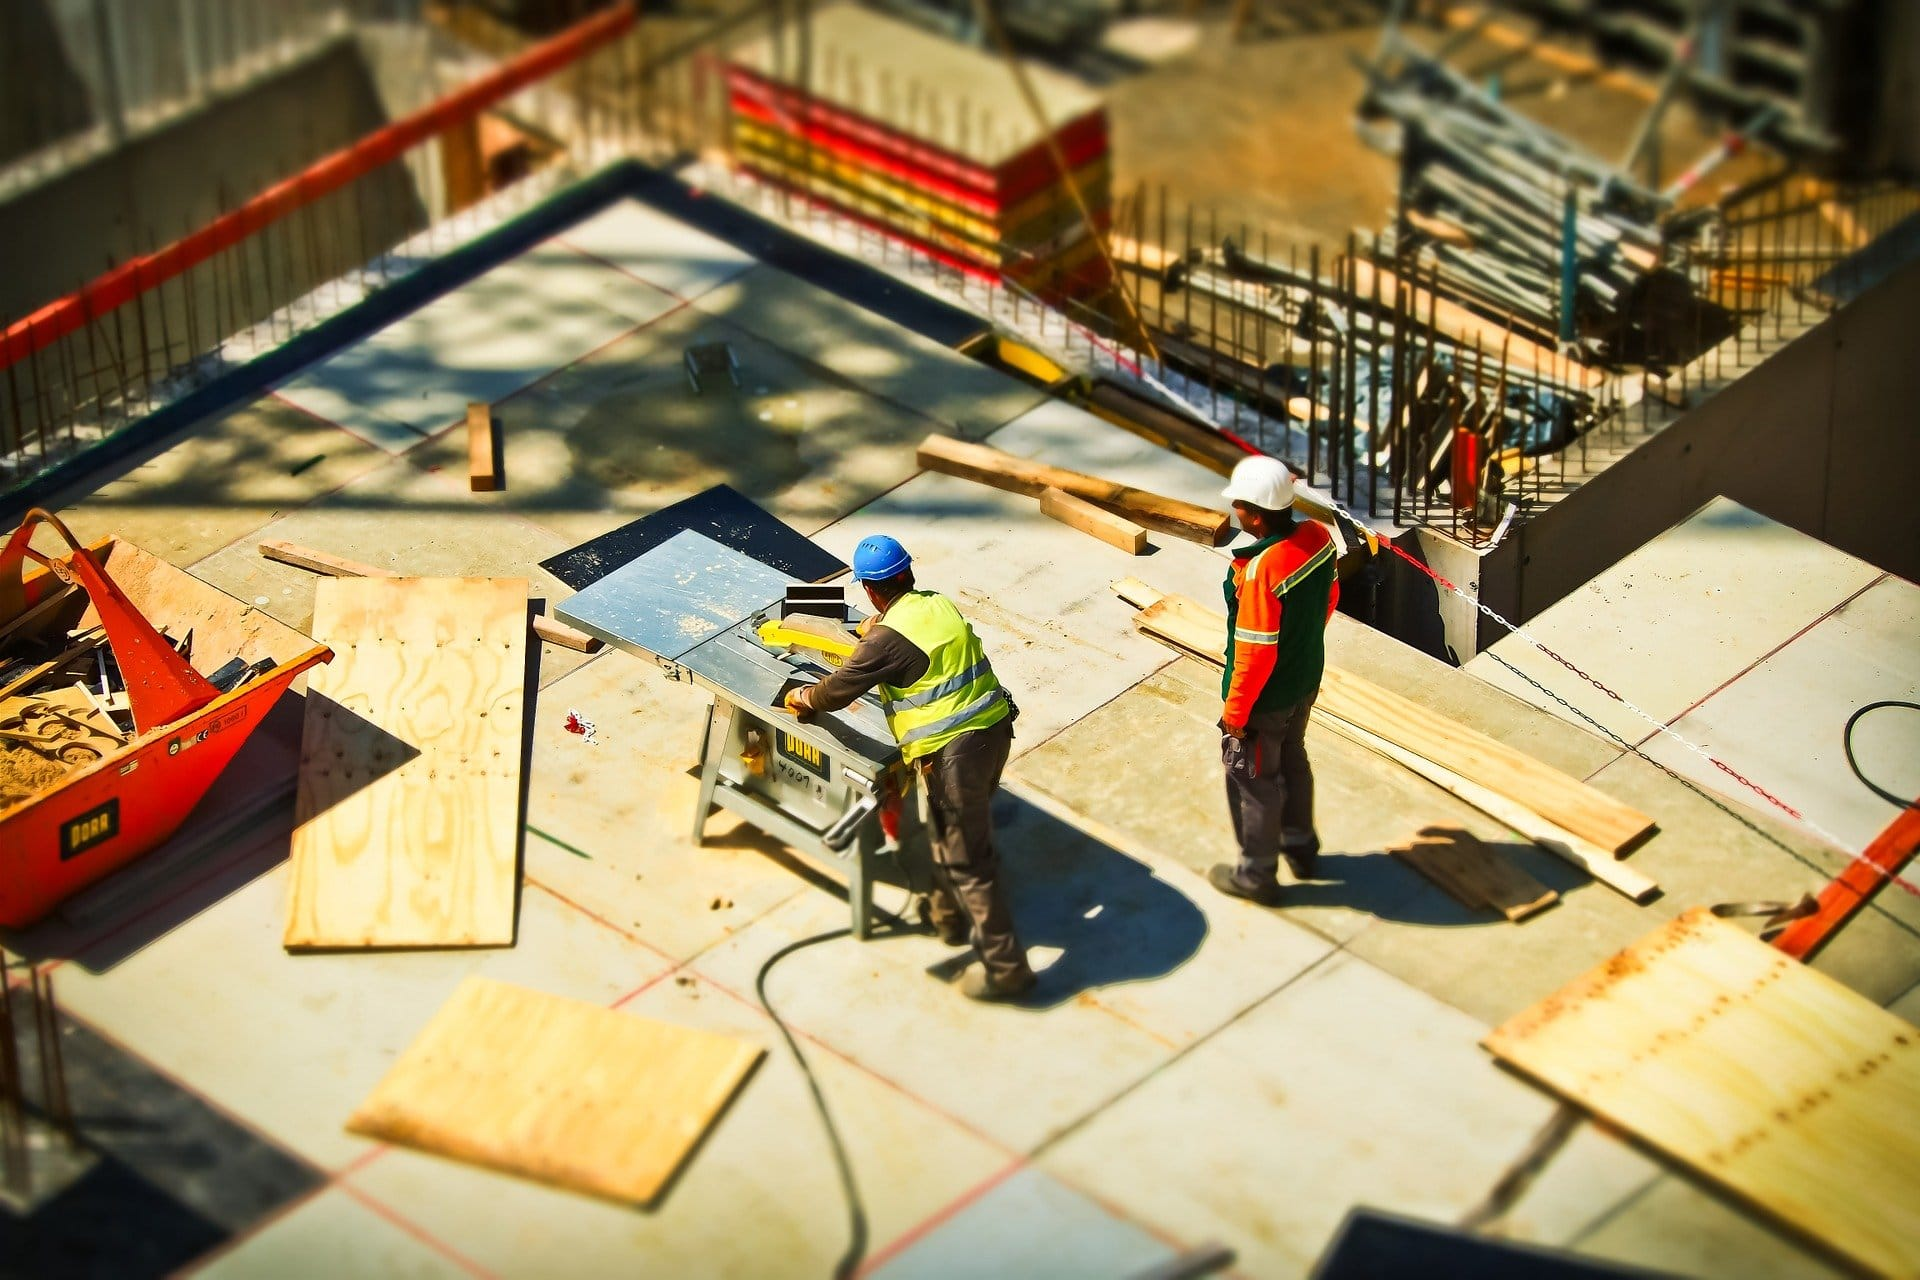 serious injuries on construction site